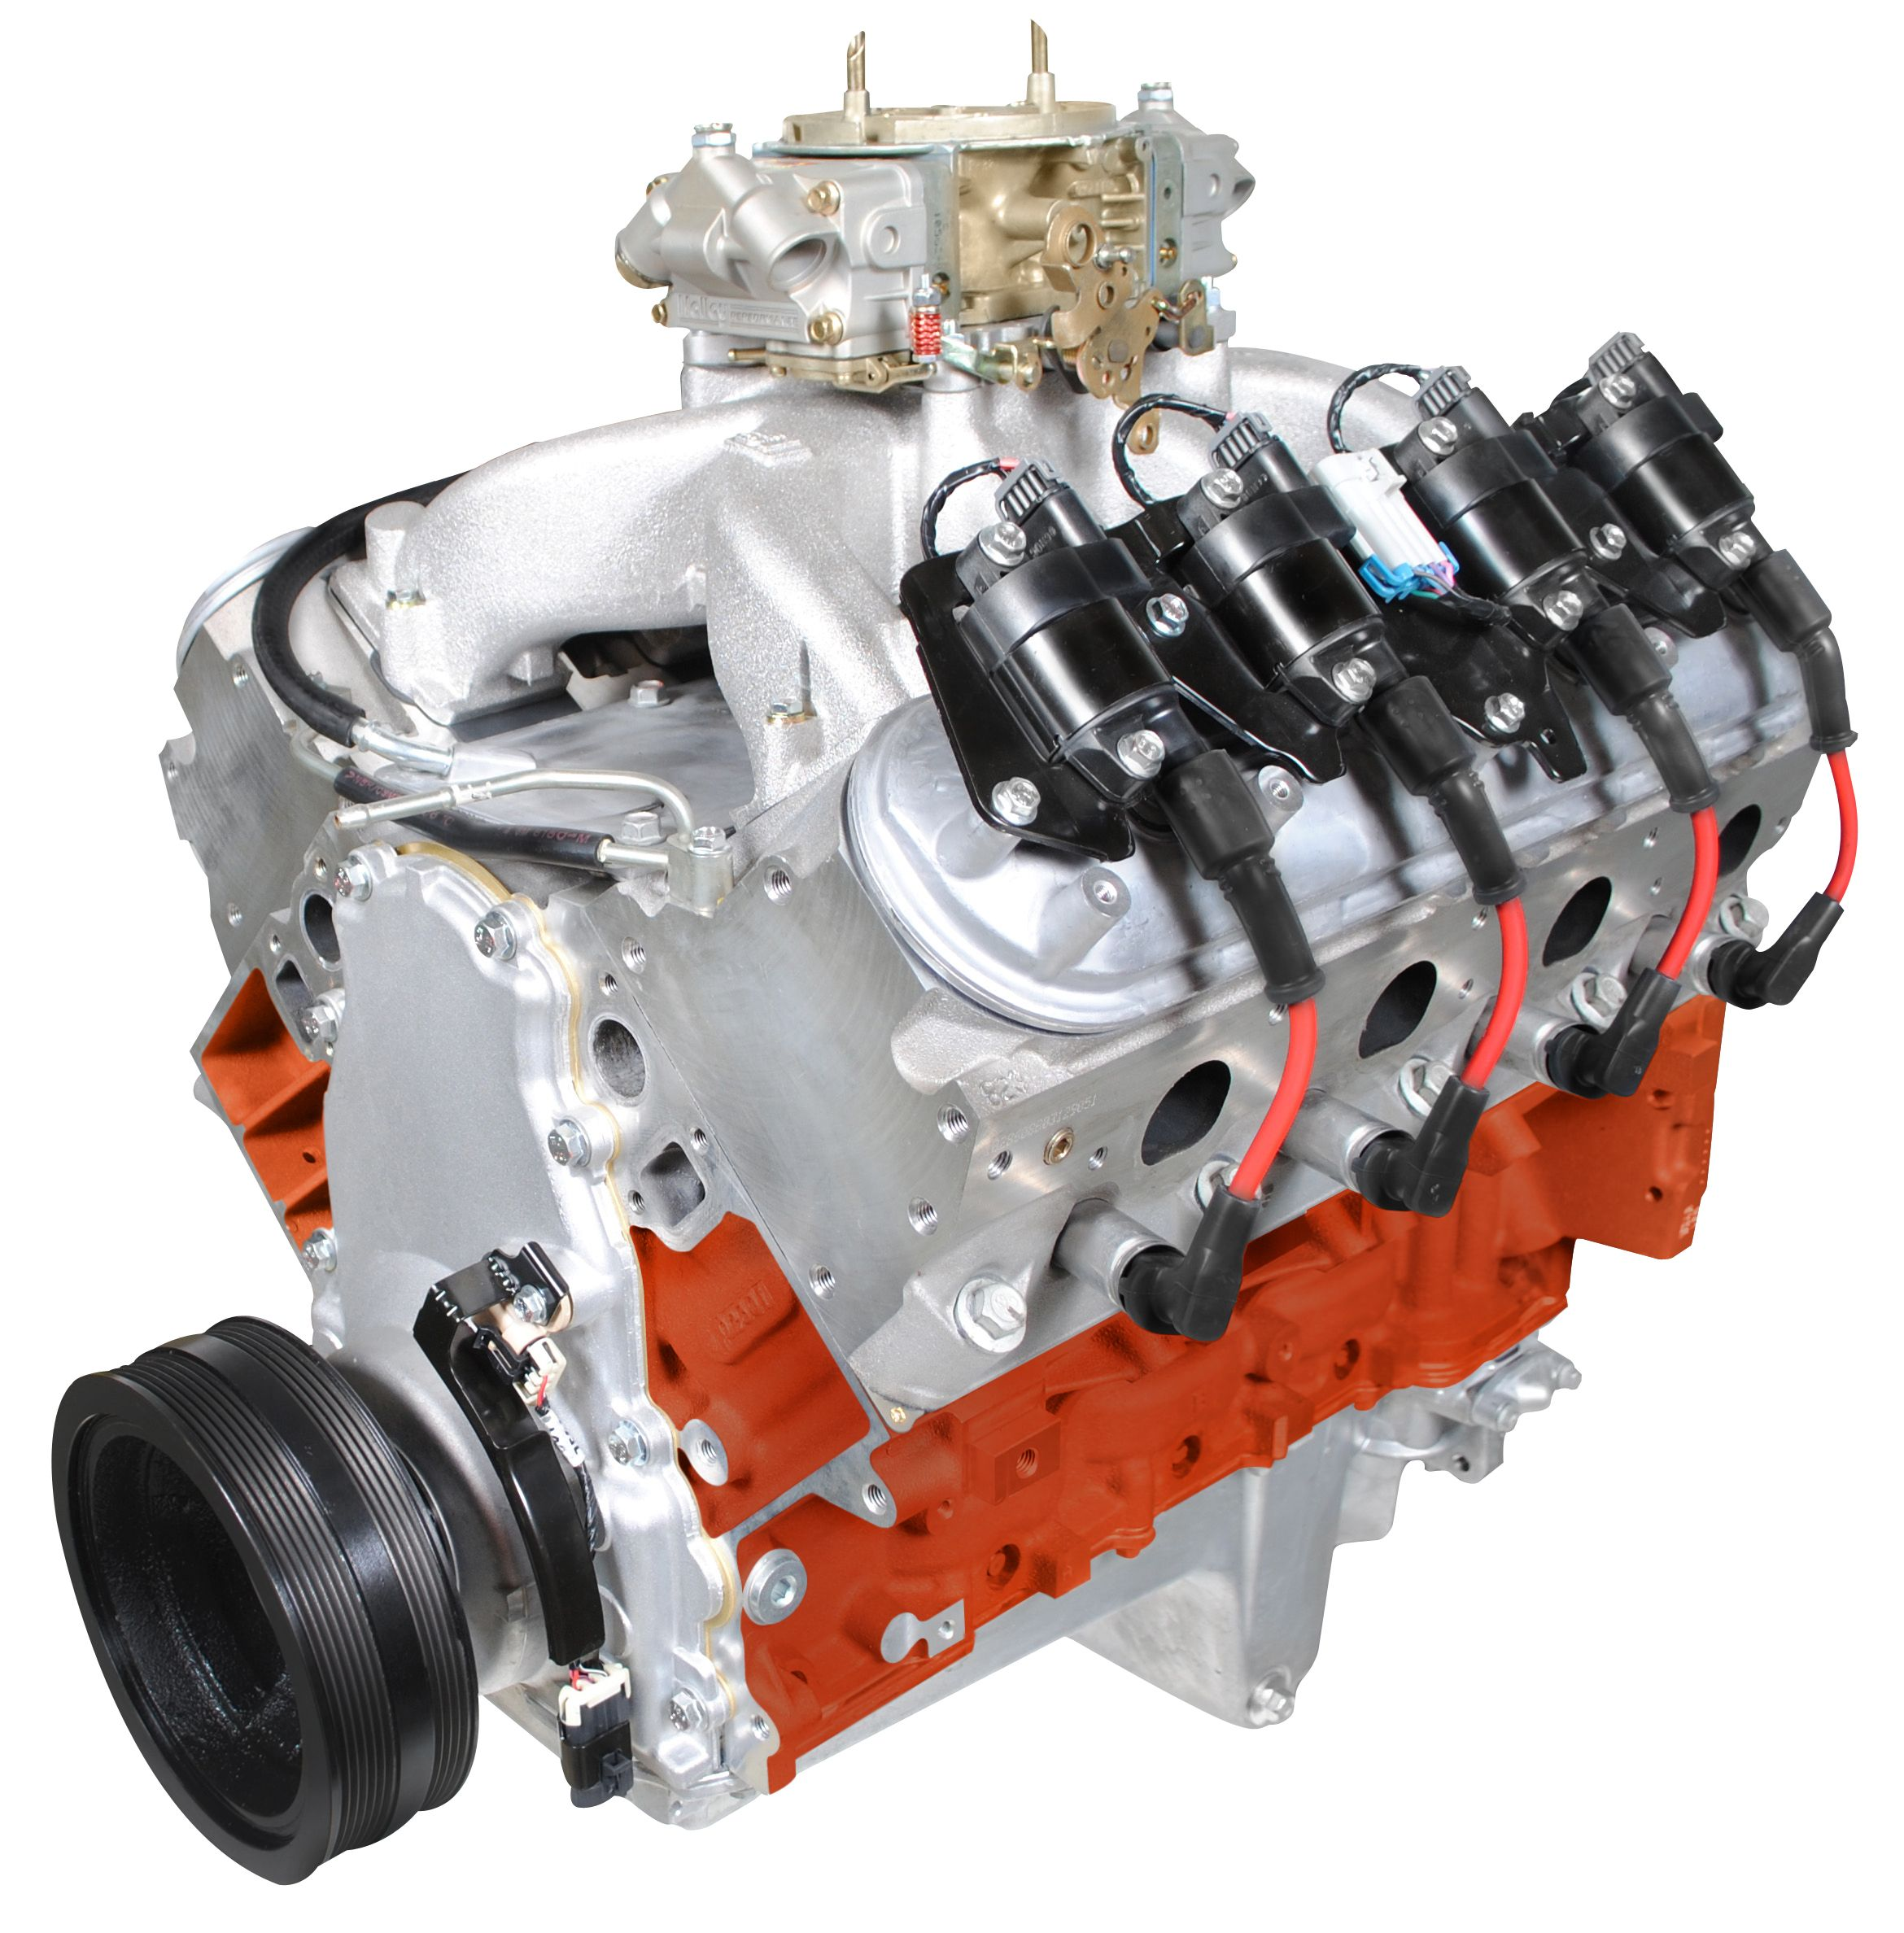 427ci Proseries Stroker Crate Engine Gm Ls Style Dressed